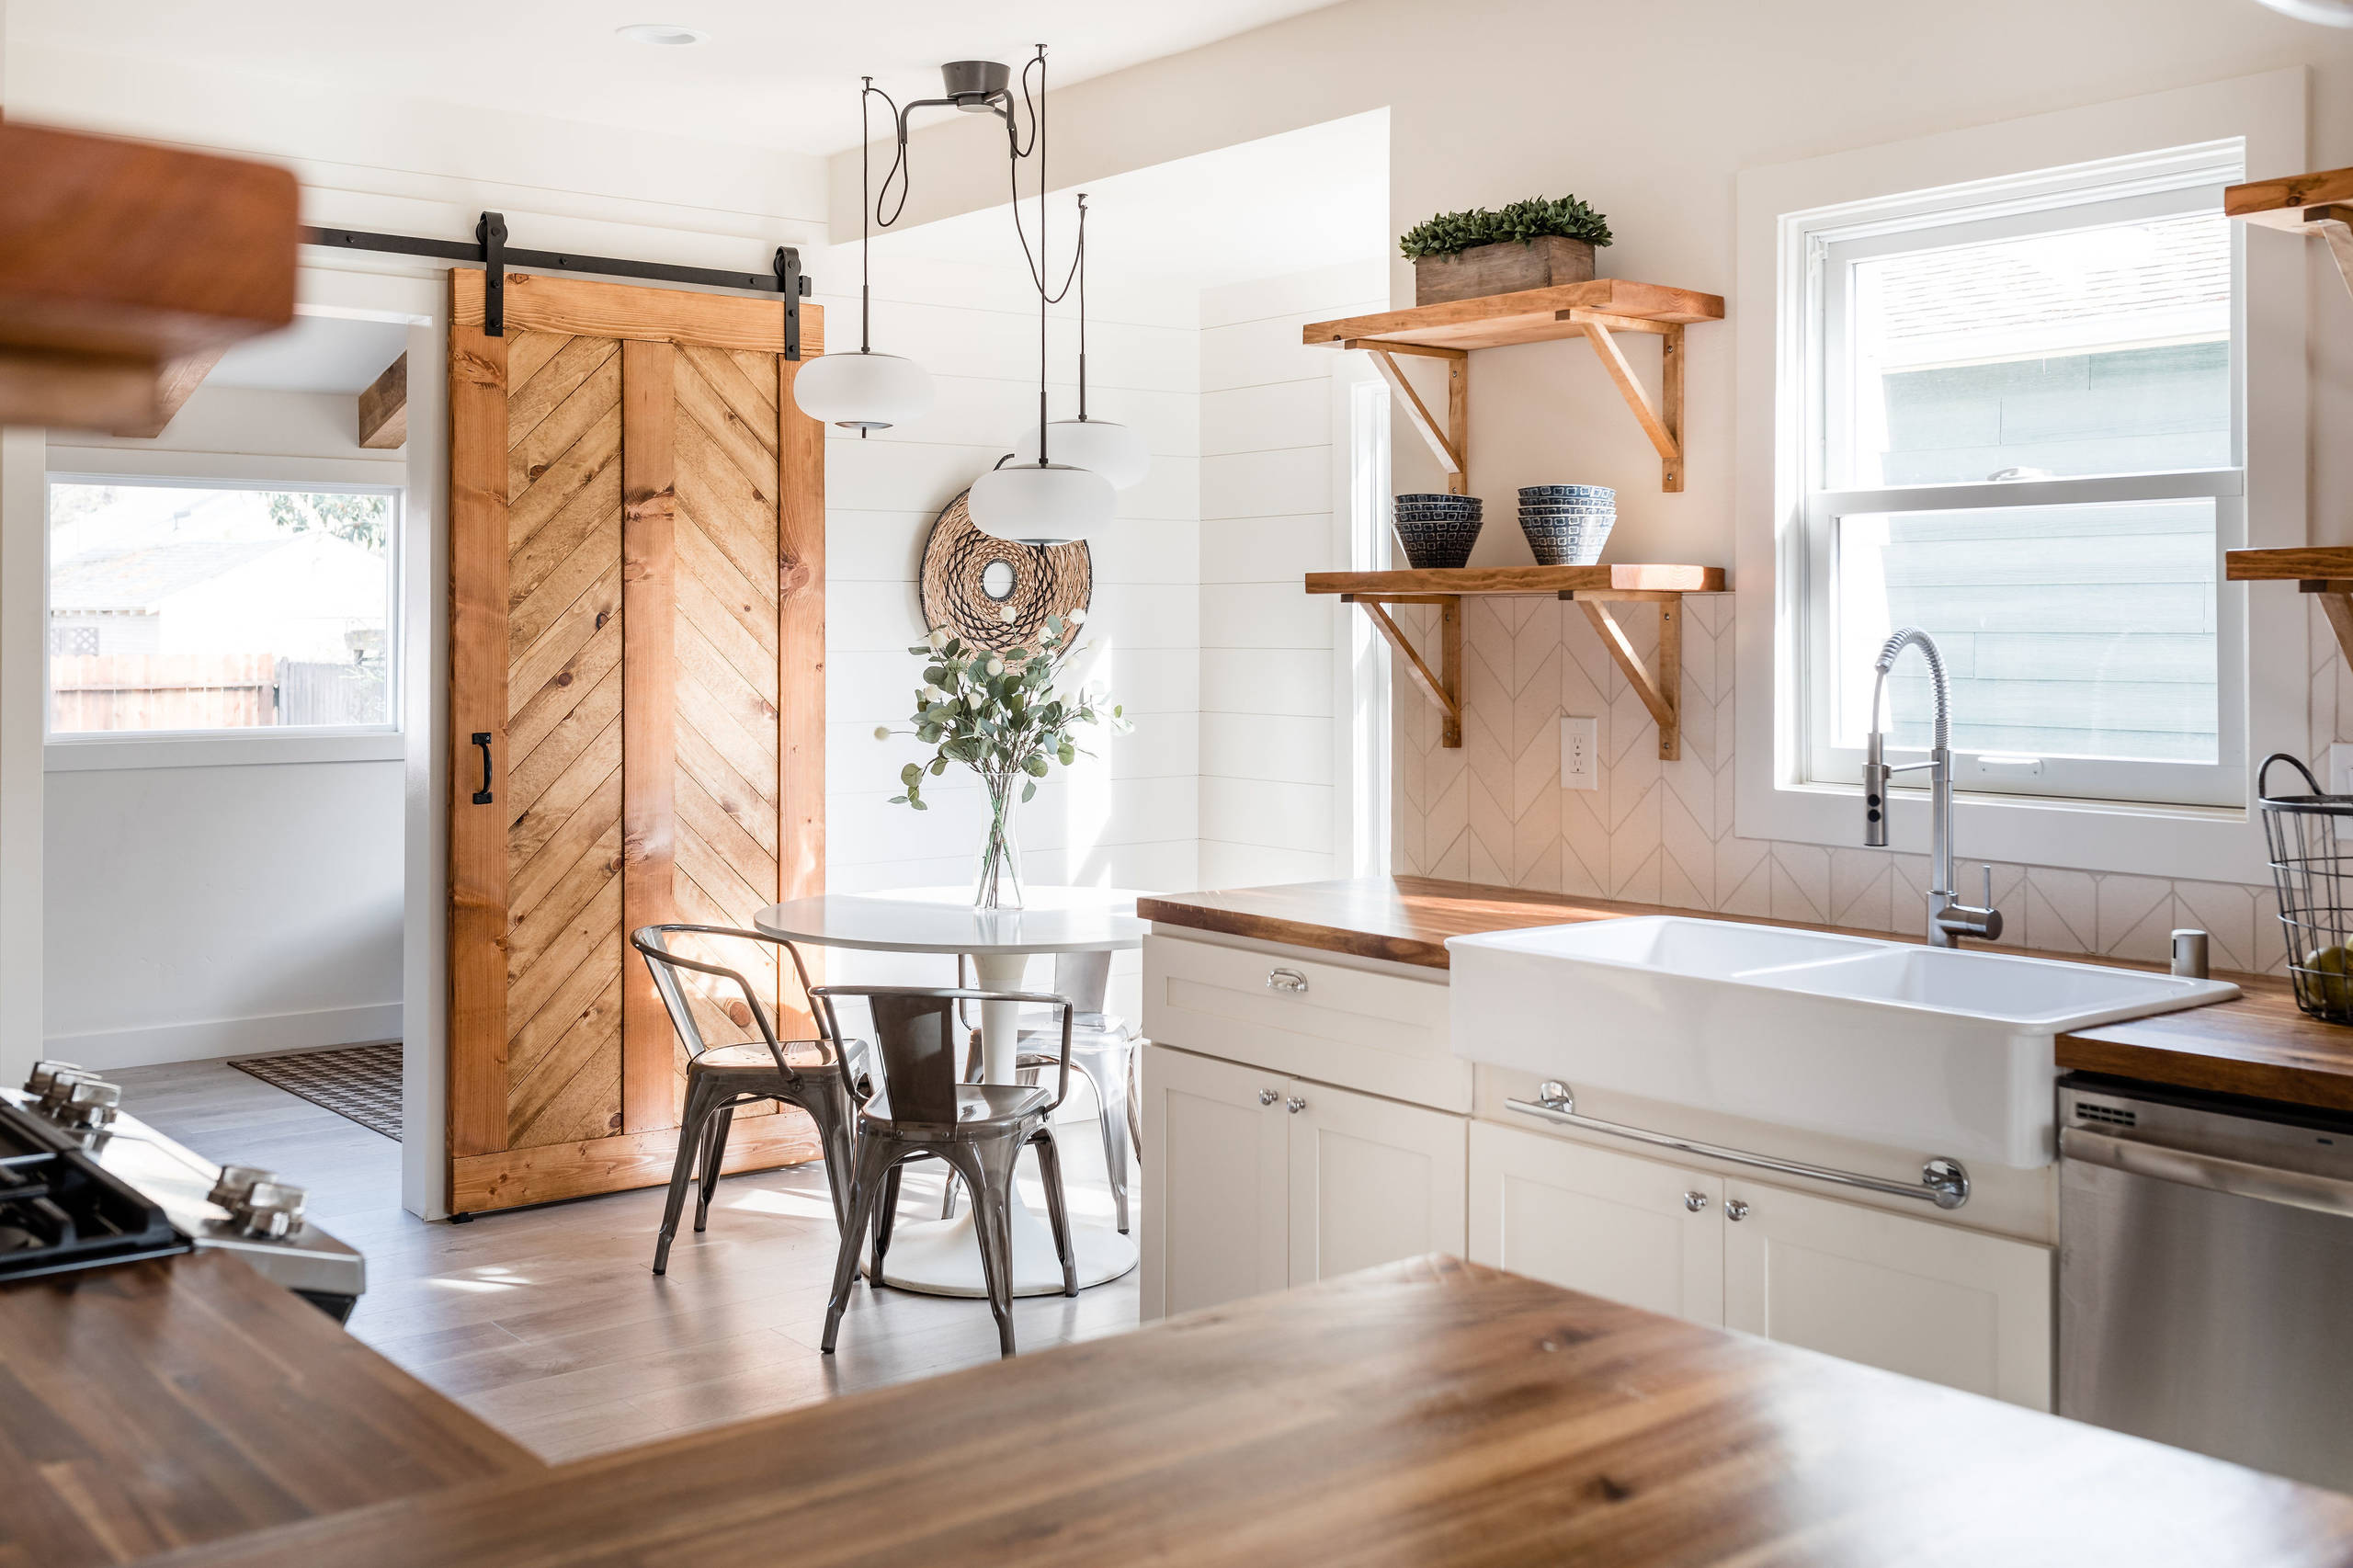 75 Beautiful Small U Shaped Kitchen Pictures Ideas December 2020 Houzz